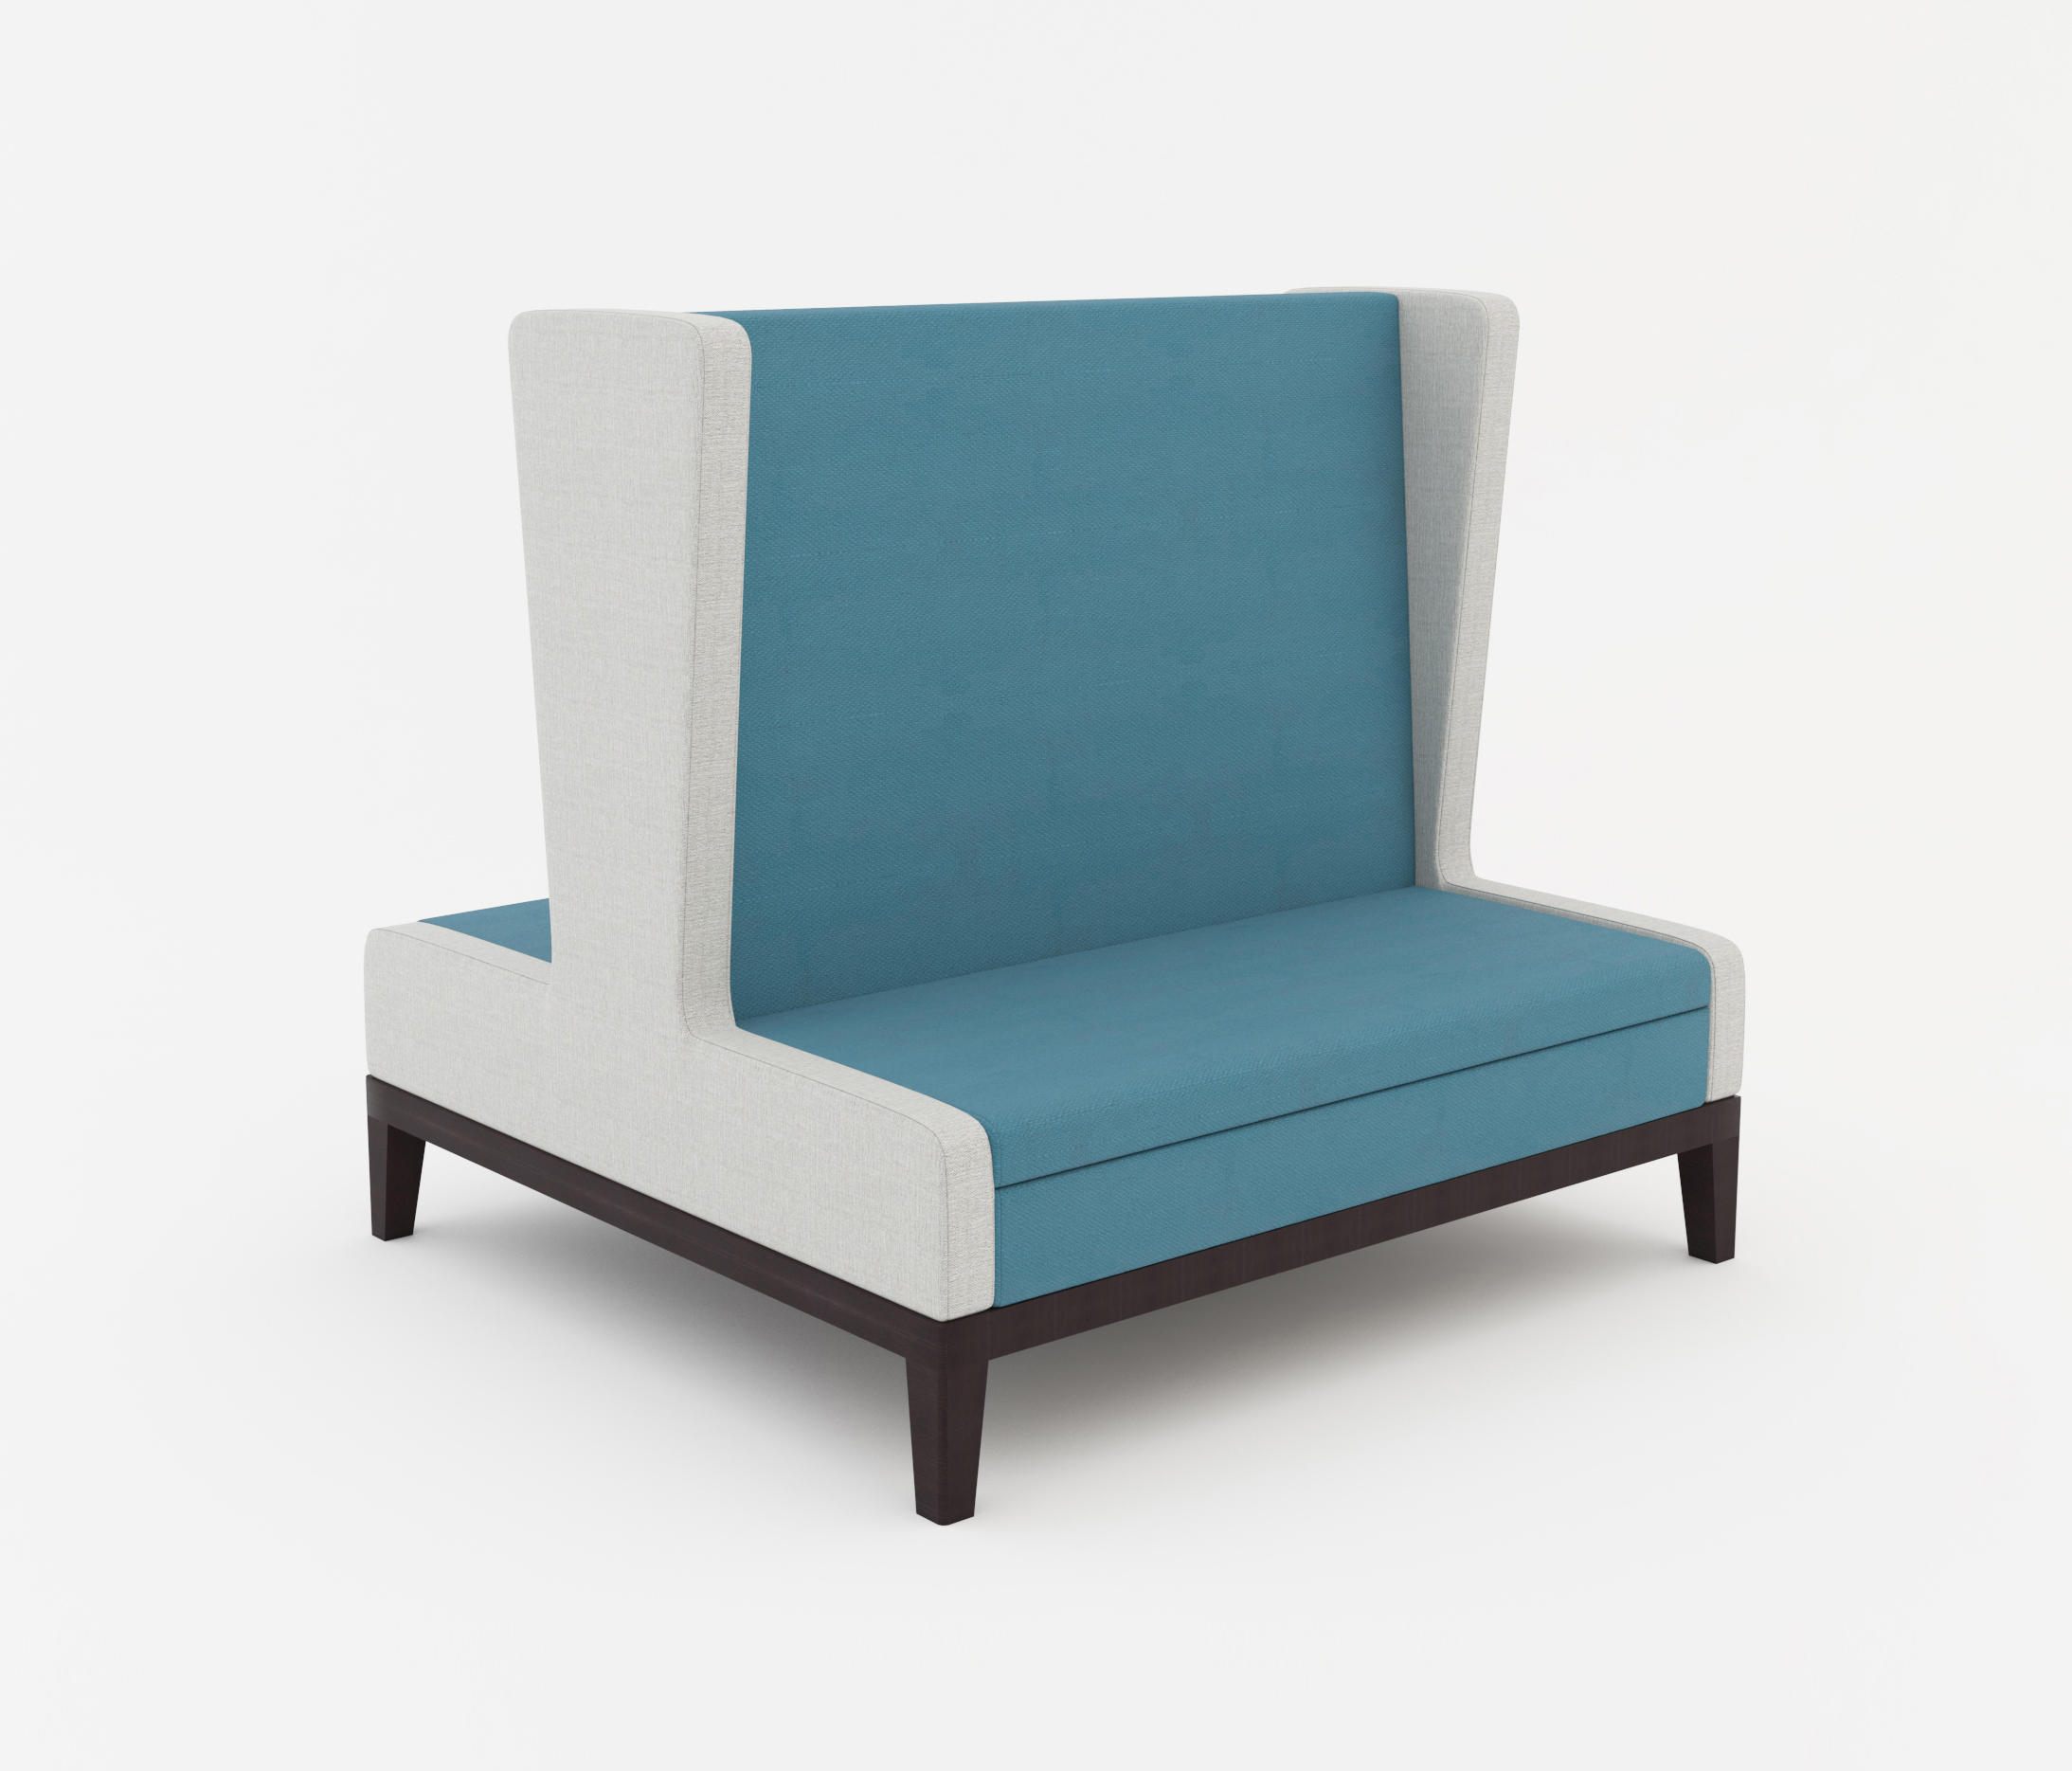 Symphony Two Seat High Back Banquette To By Erg International Benches